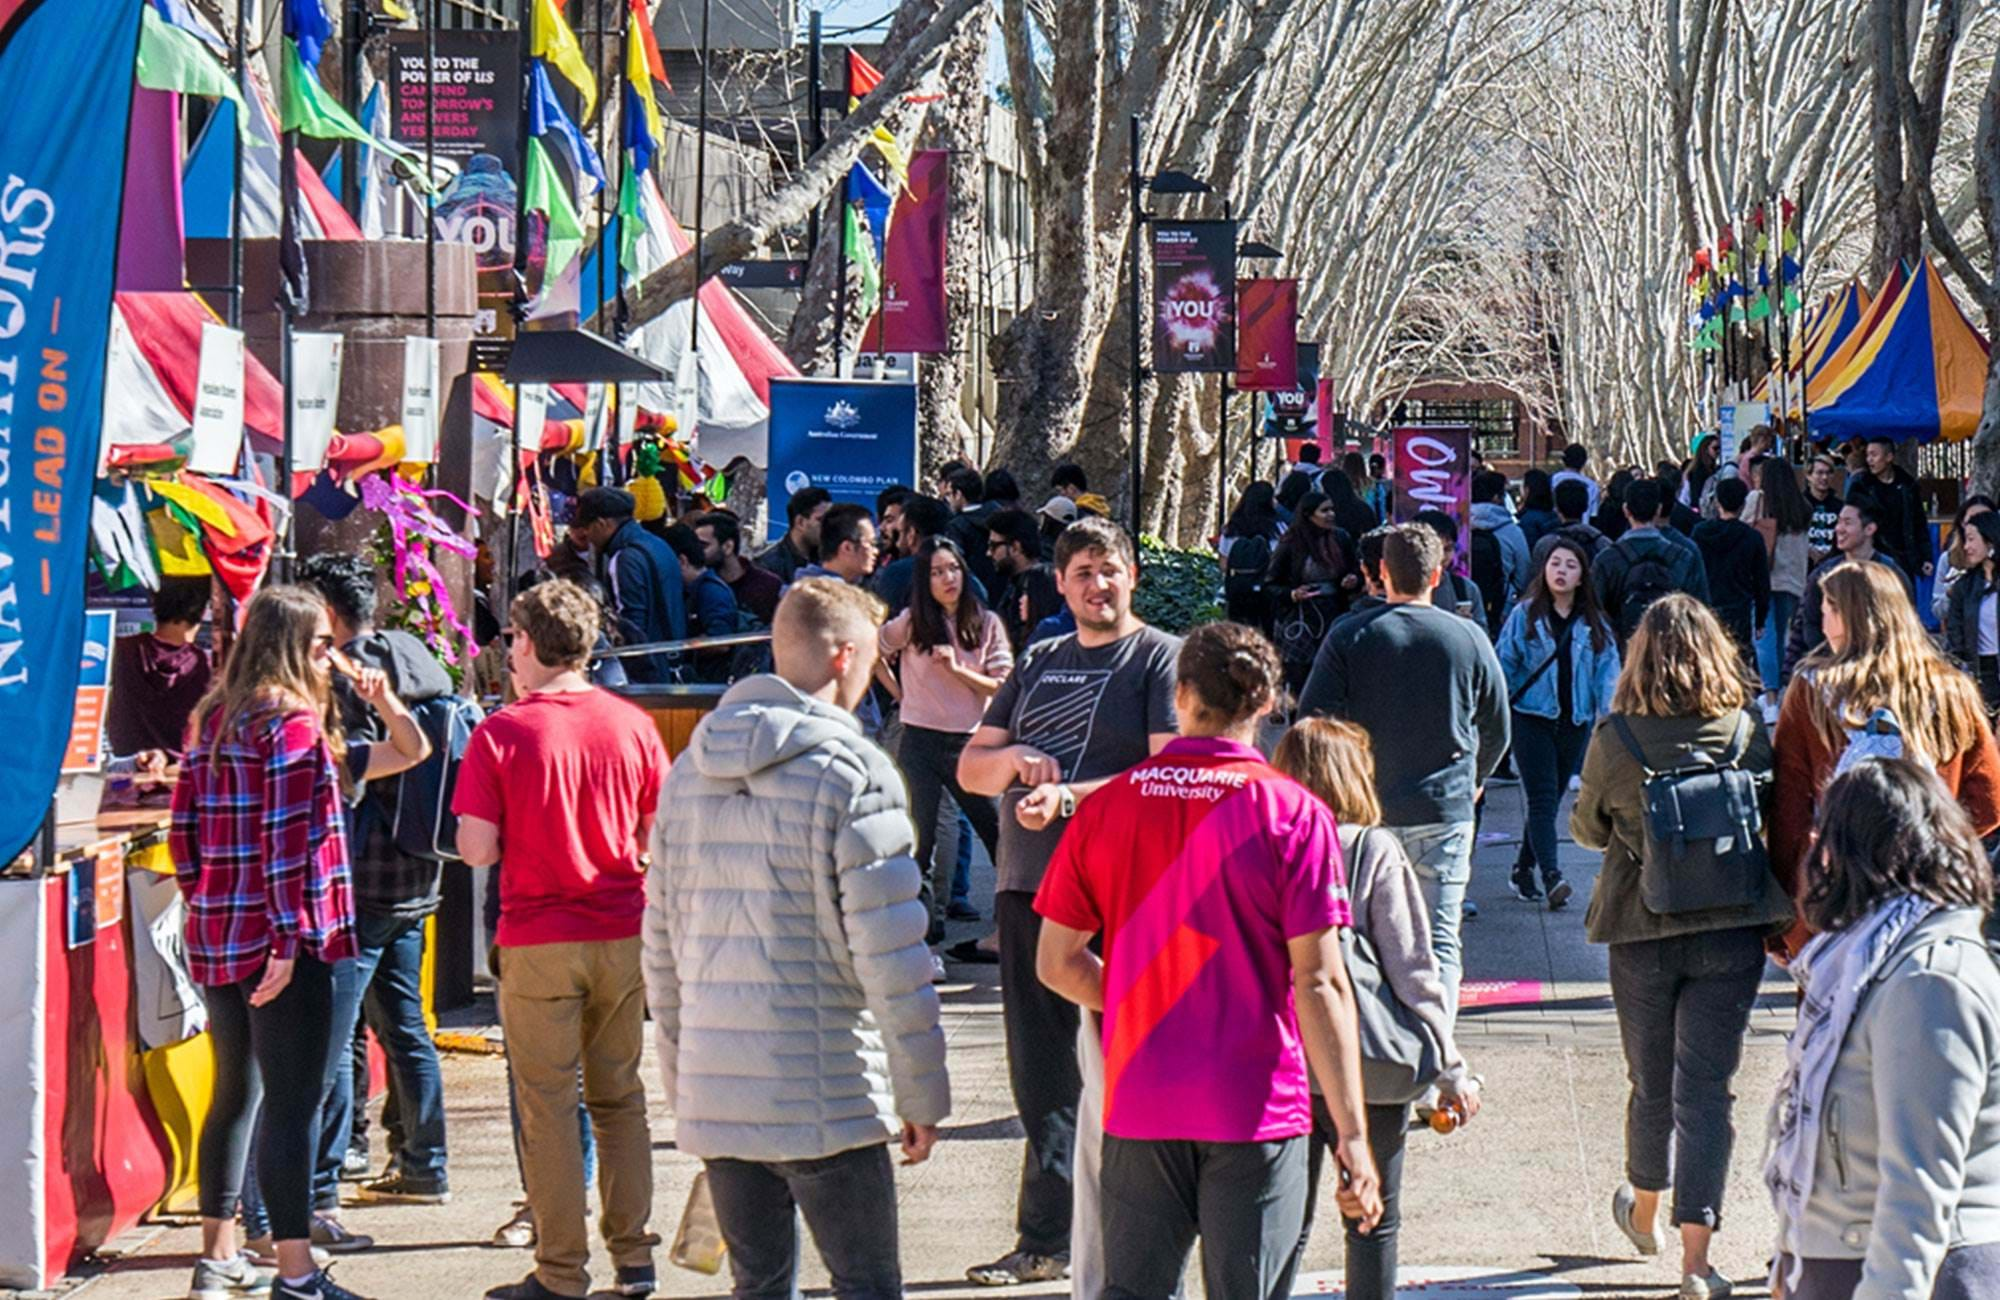 Macquarie University Students Fair